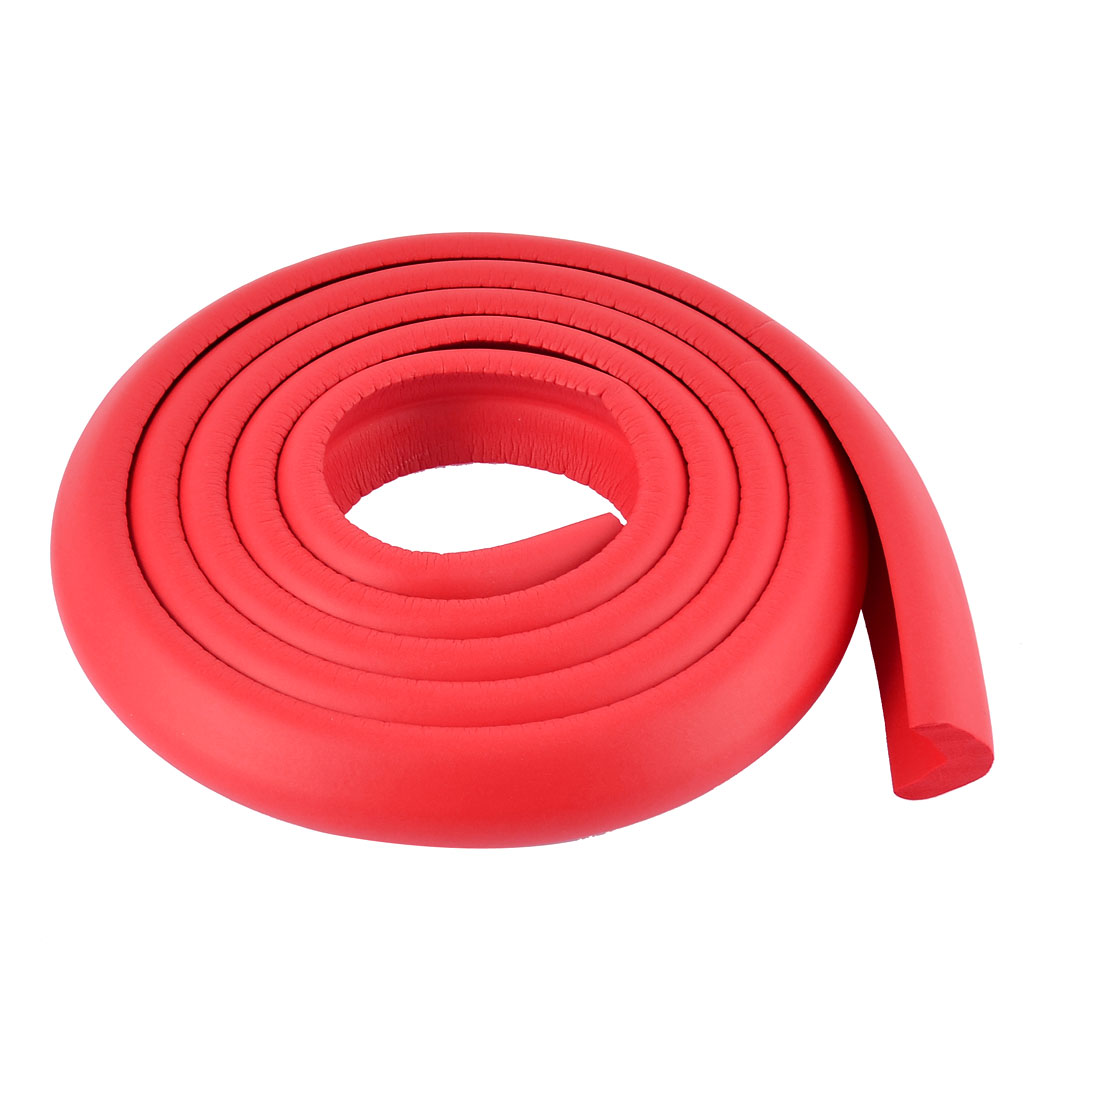 Furniture Table Corner Edge Softner Guard Protector Bumper Cushion Red